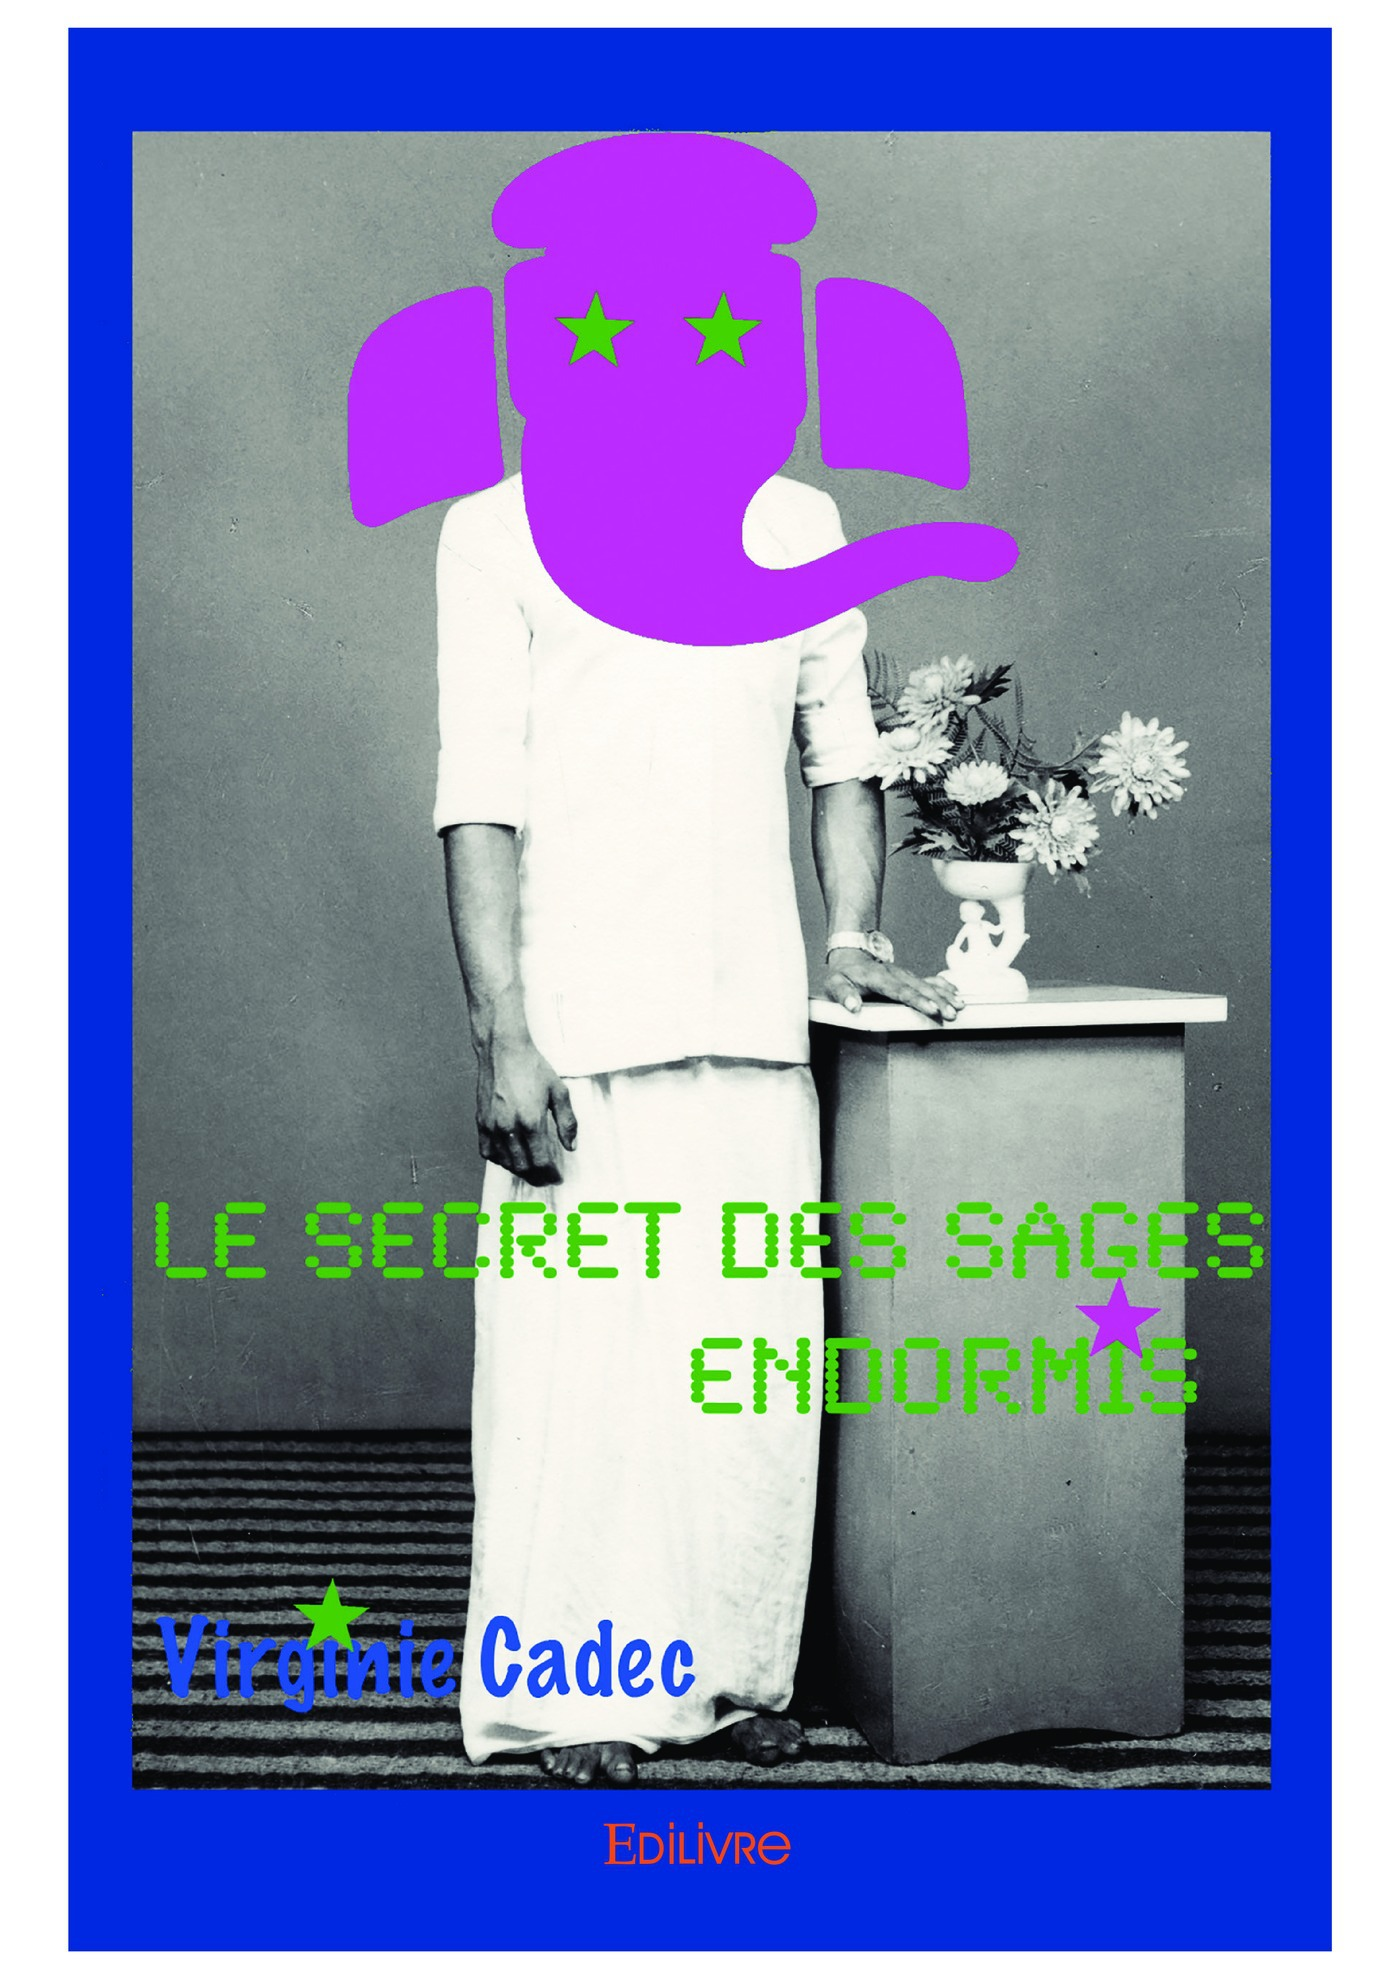 Virginie Cadec Le Secret des sages endormis